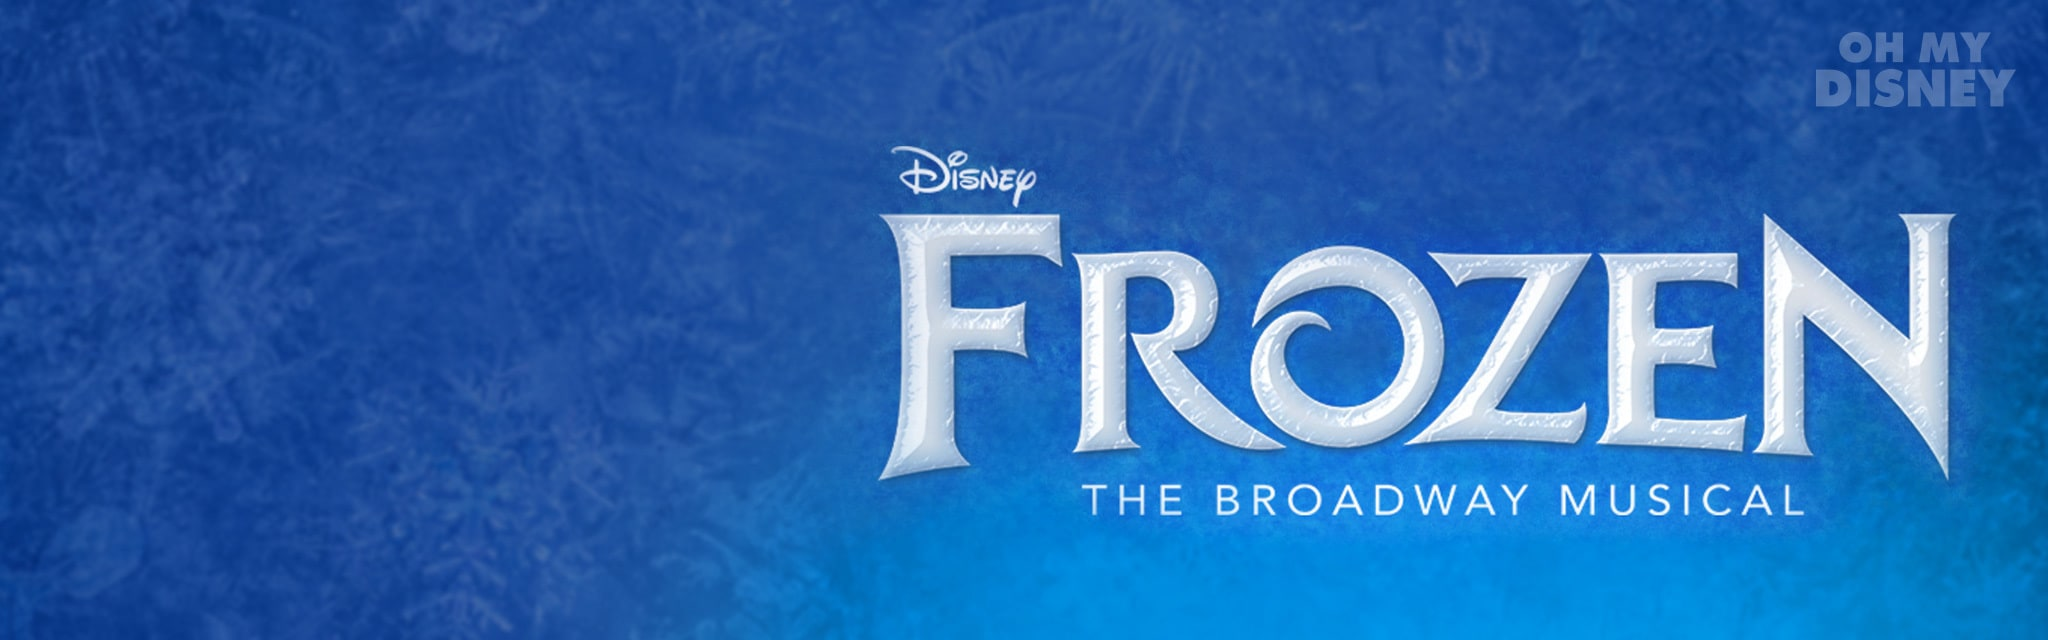 WATCH THE NEW TRAILER FOR FROZEN ON BROADWAY